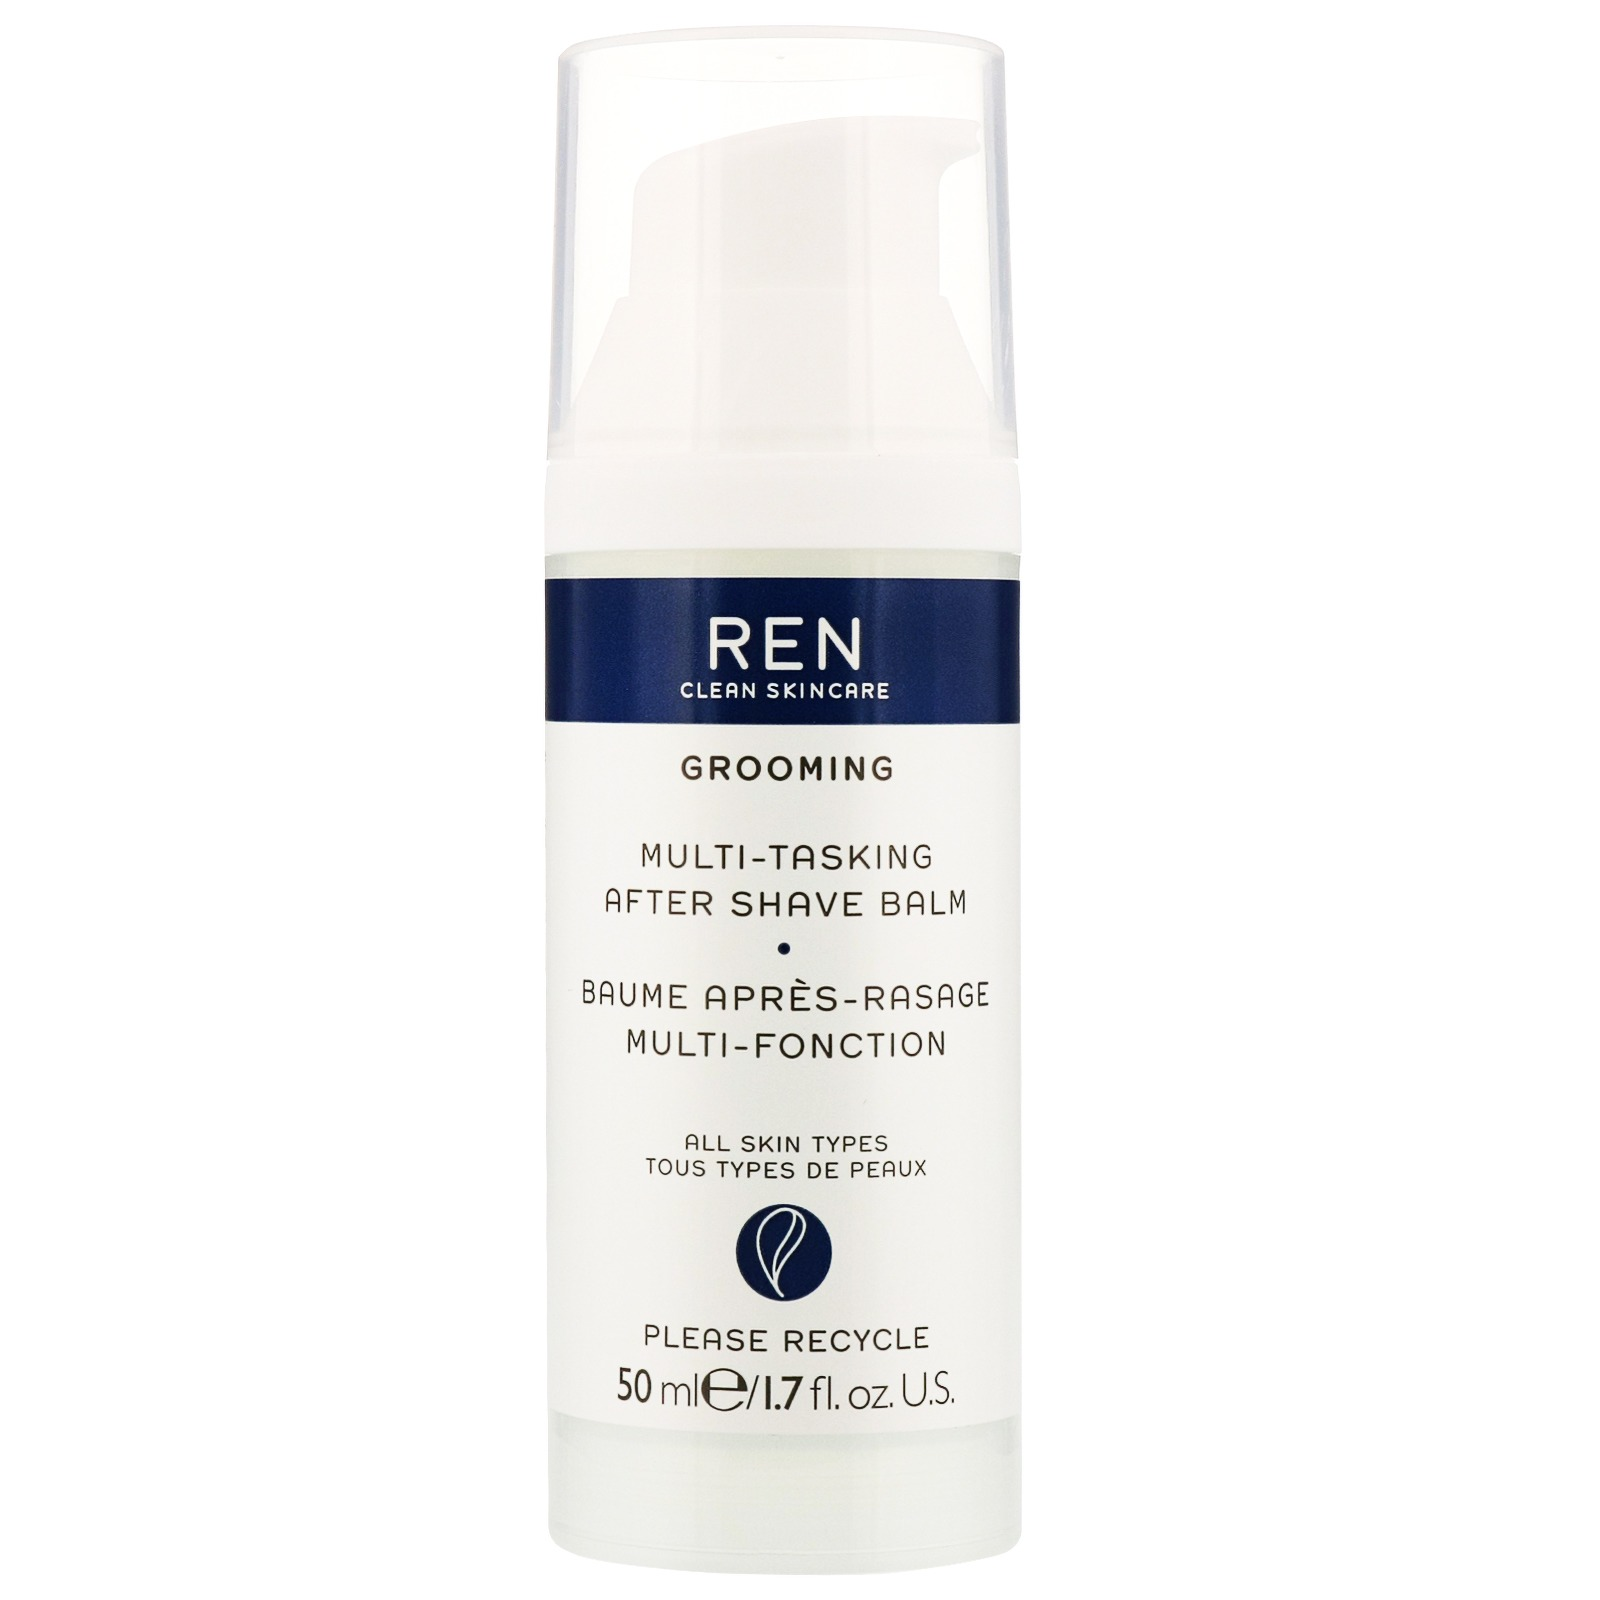 REN Clean Skincare Men Multi-Tasking After Shave Balm 50ml / 1.7 fl.oz.